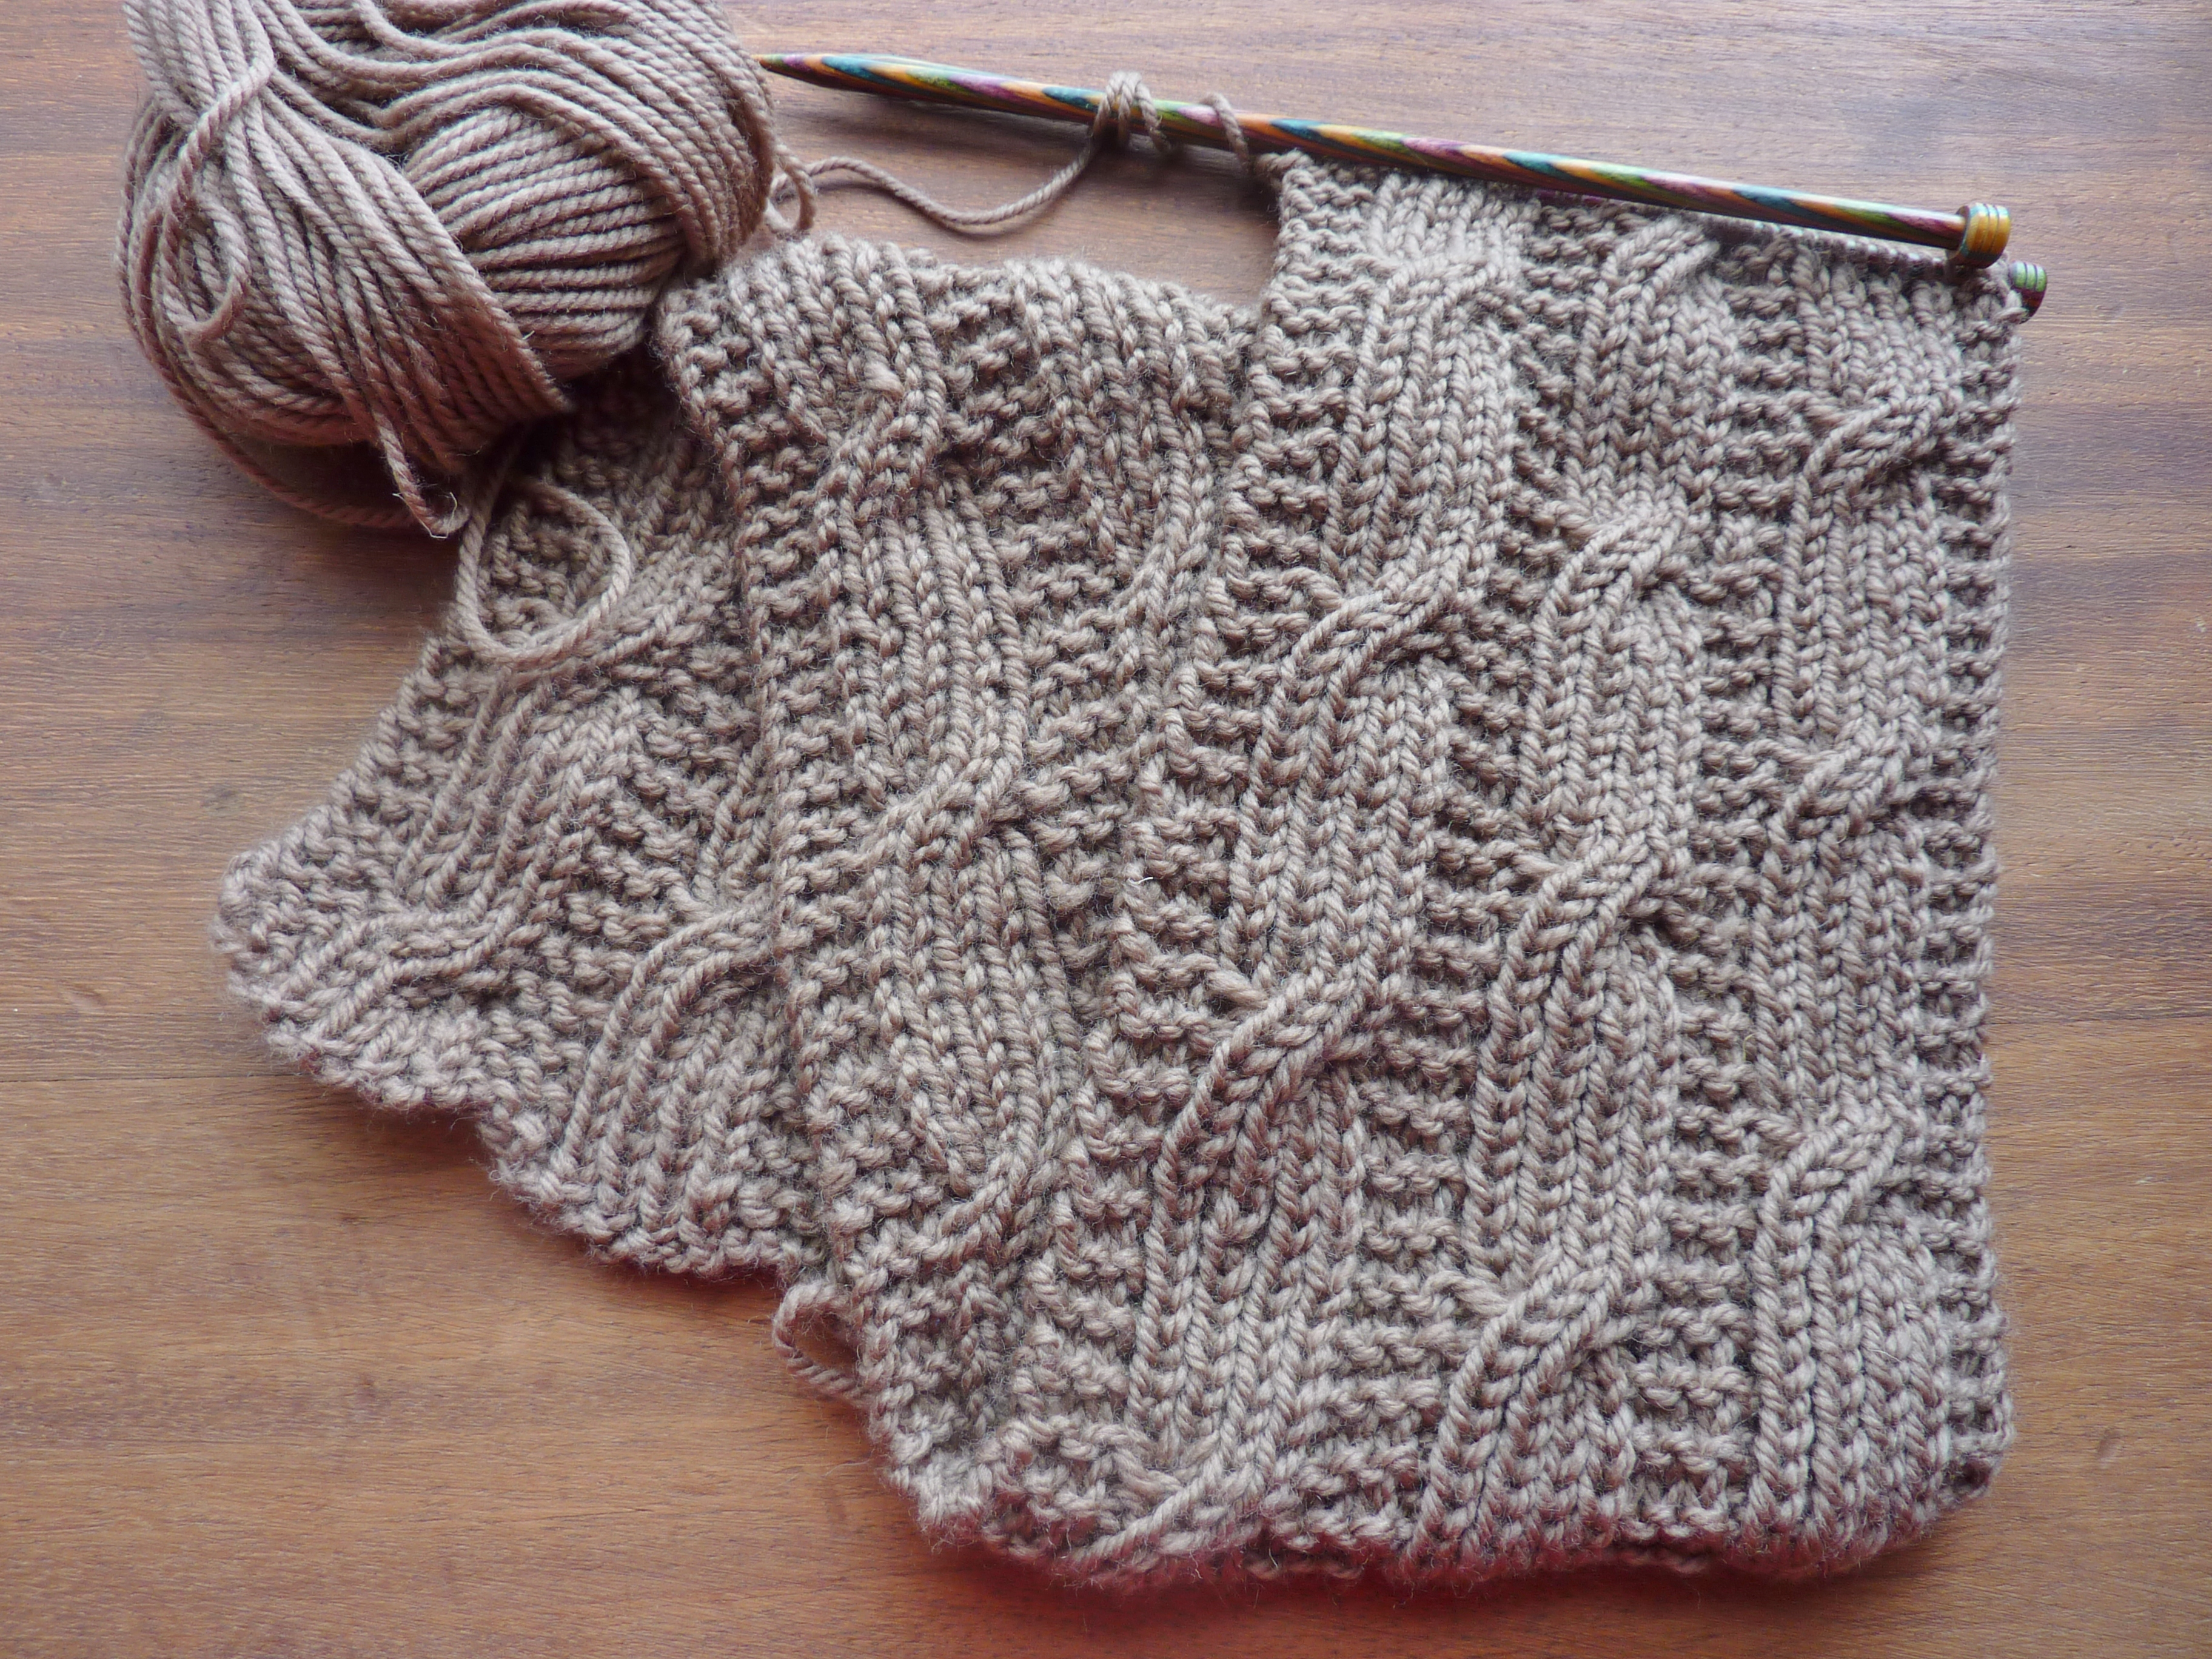 Cable Knitted Scarf Pattern Knitting Libran Part 2 Confessions Of A Fibre Strumpet